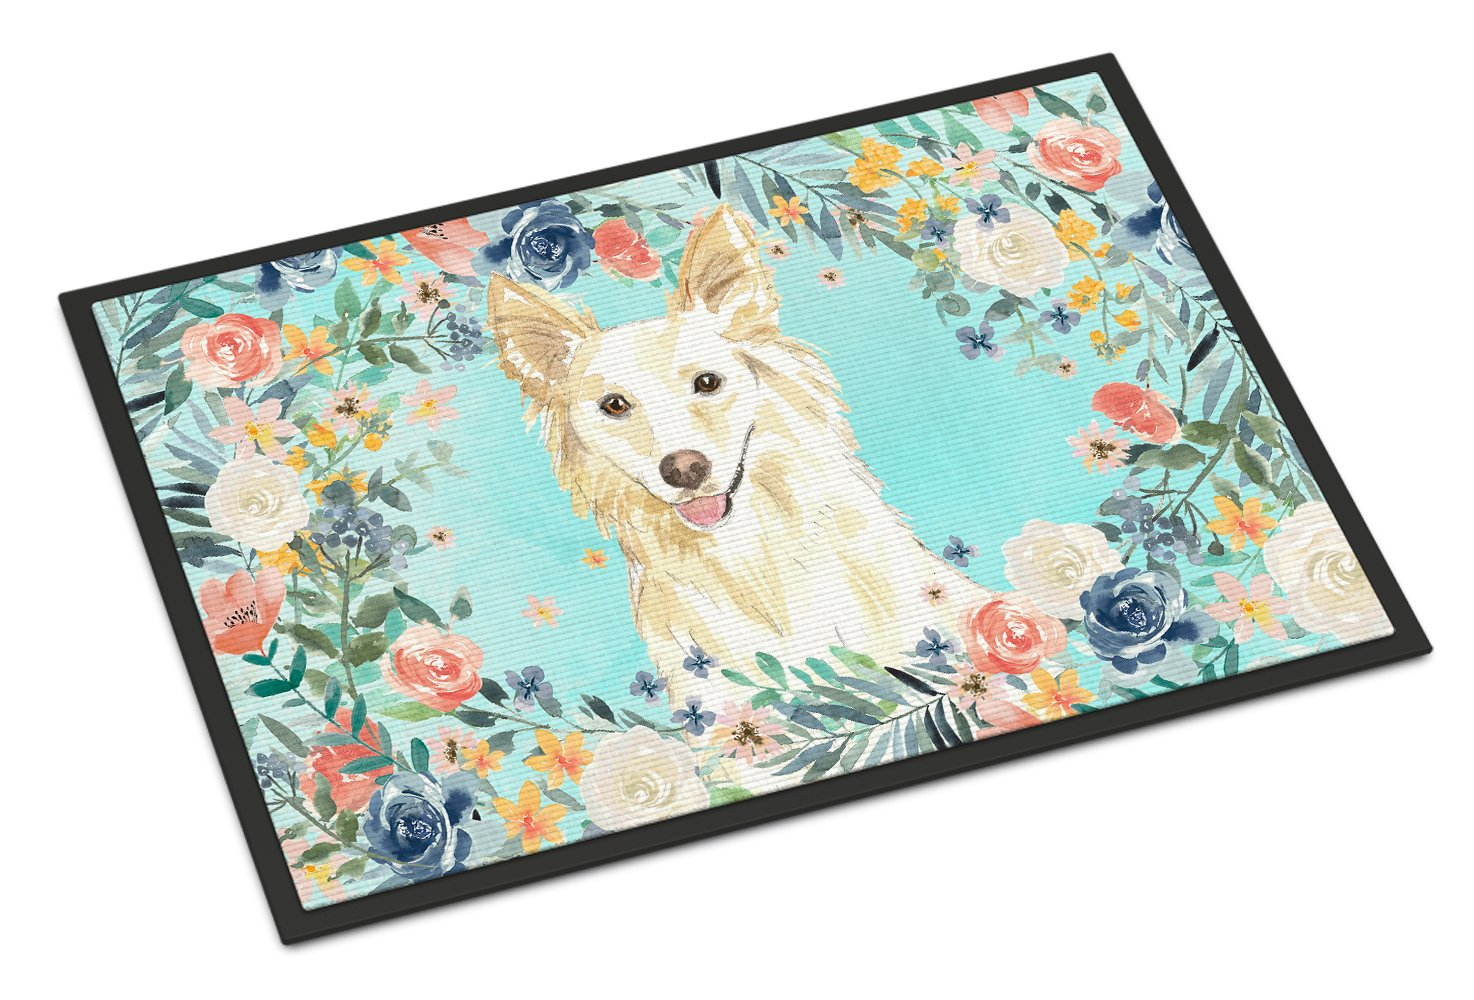 White Collie Indoor or Outdoor Mat 24x36 CK3403JMAT by Caroline's Treasures